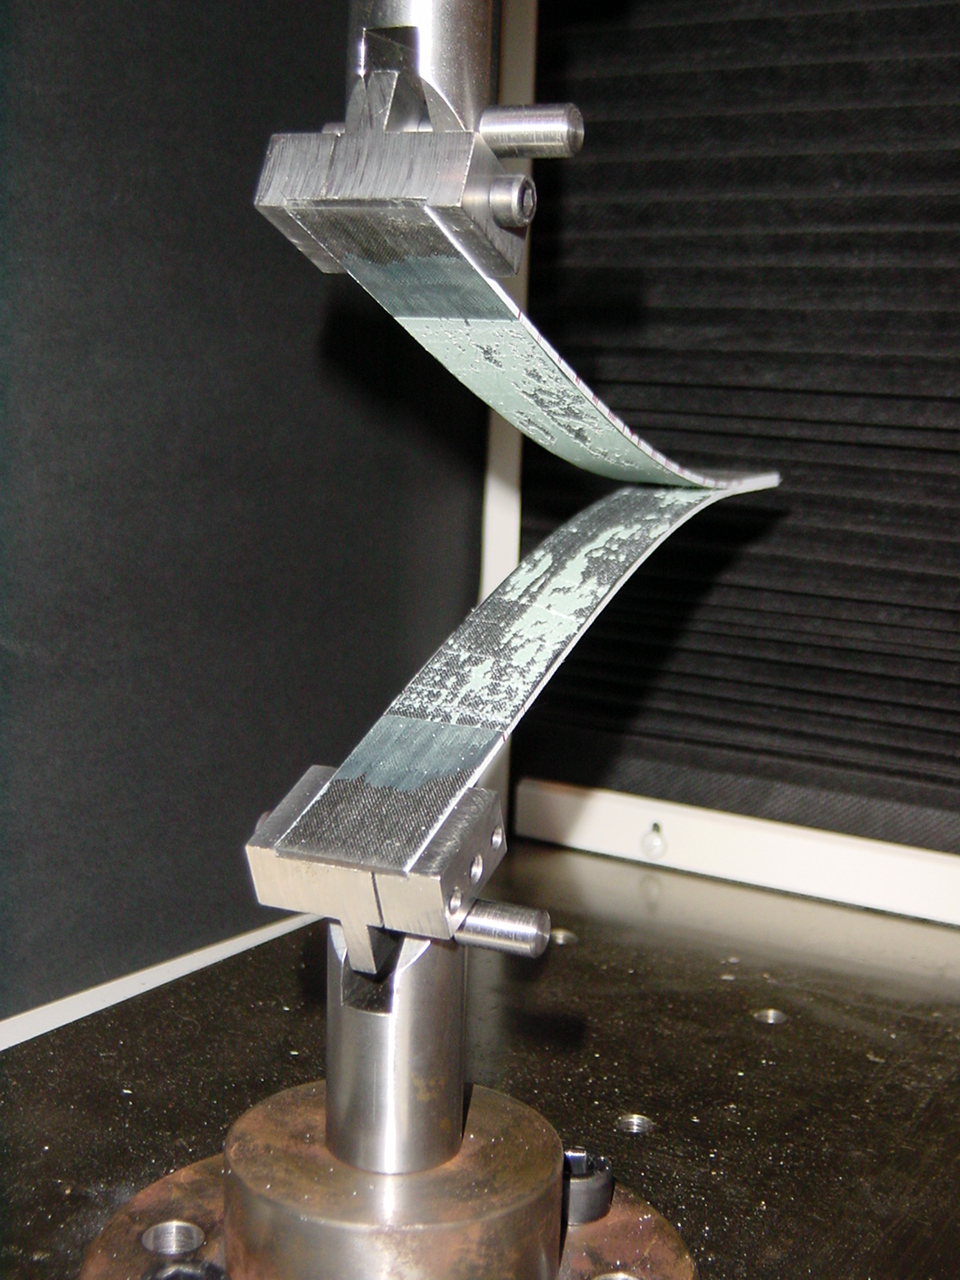 Fracture toughness test of a bonded joint